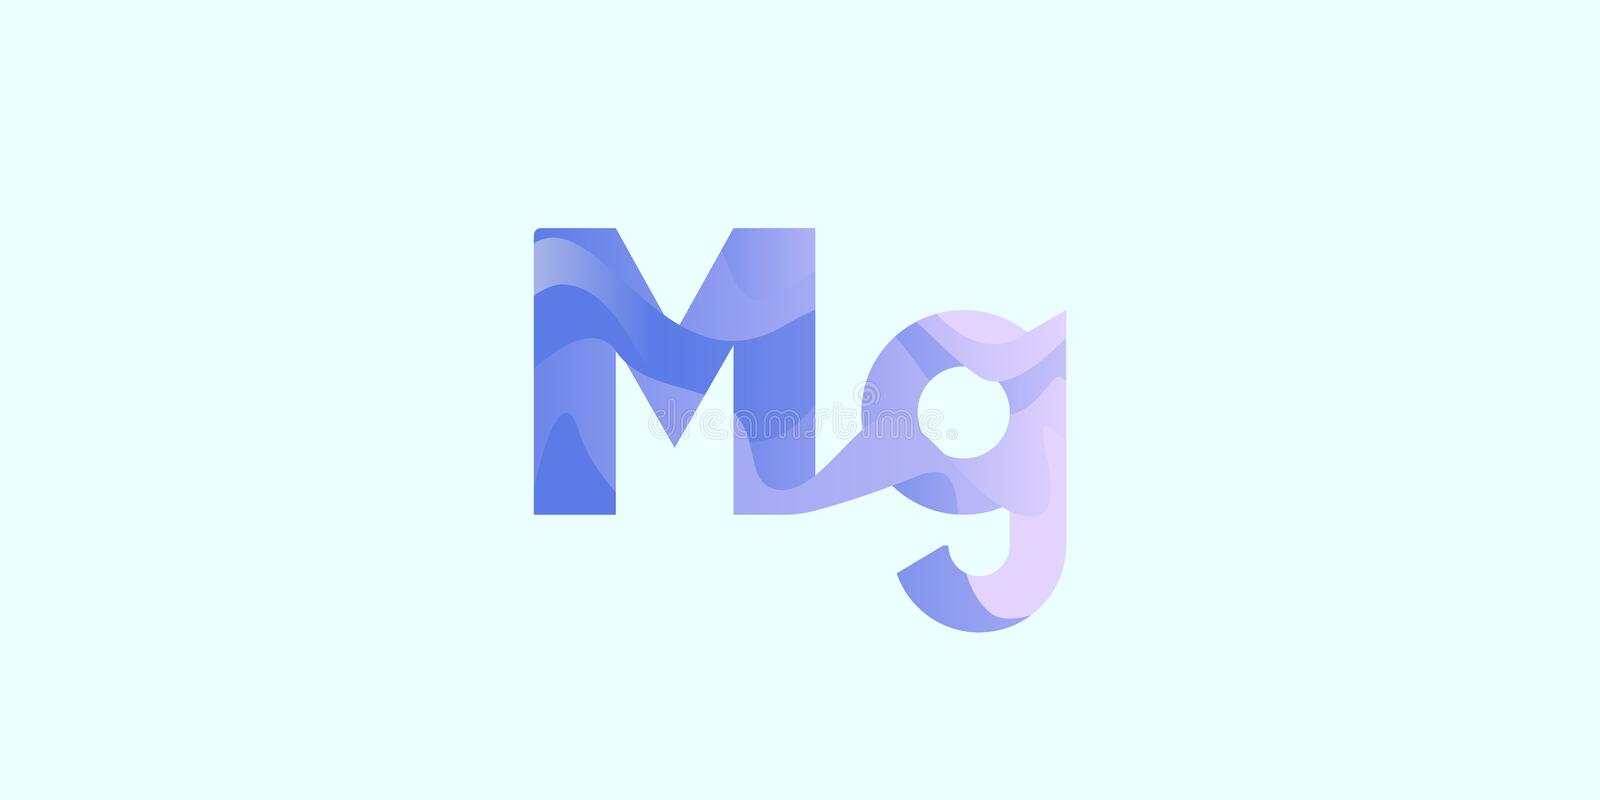 Mg-magnesium chemisch element stock illustratie